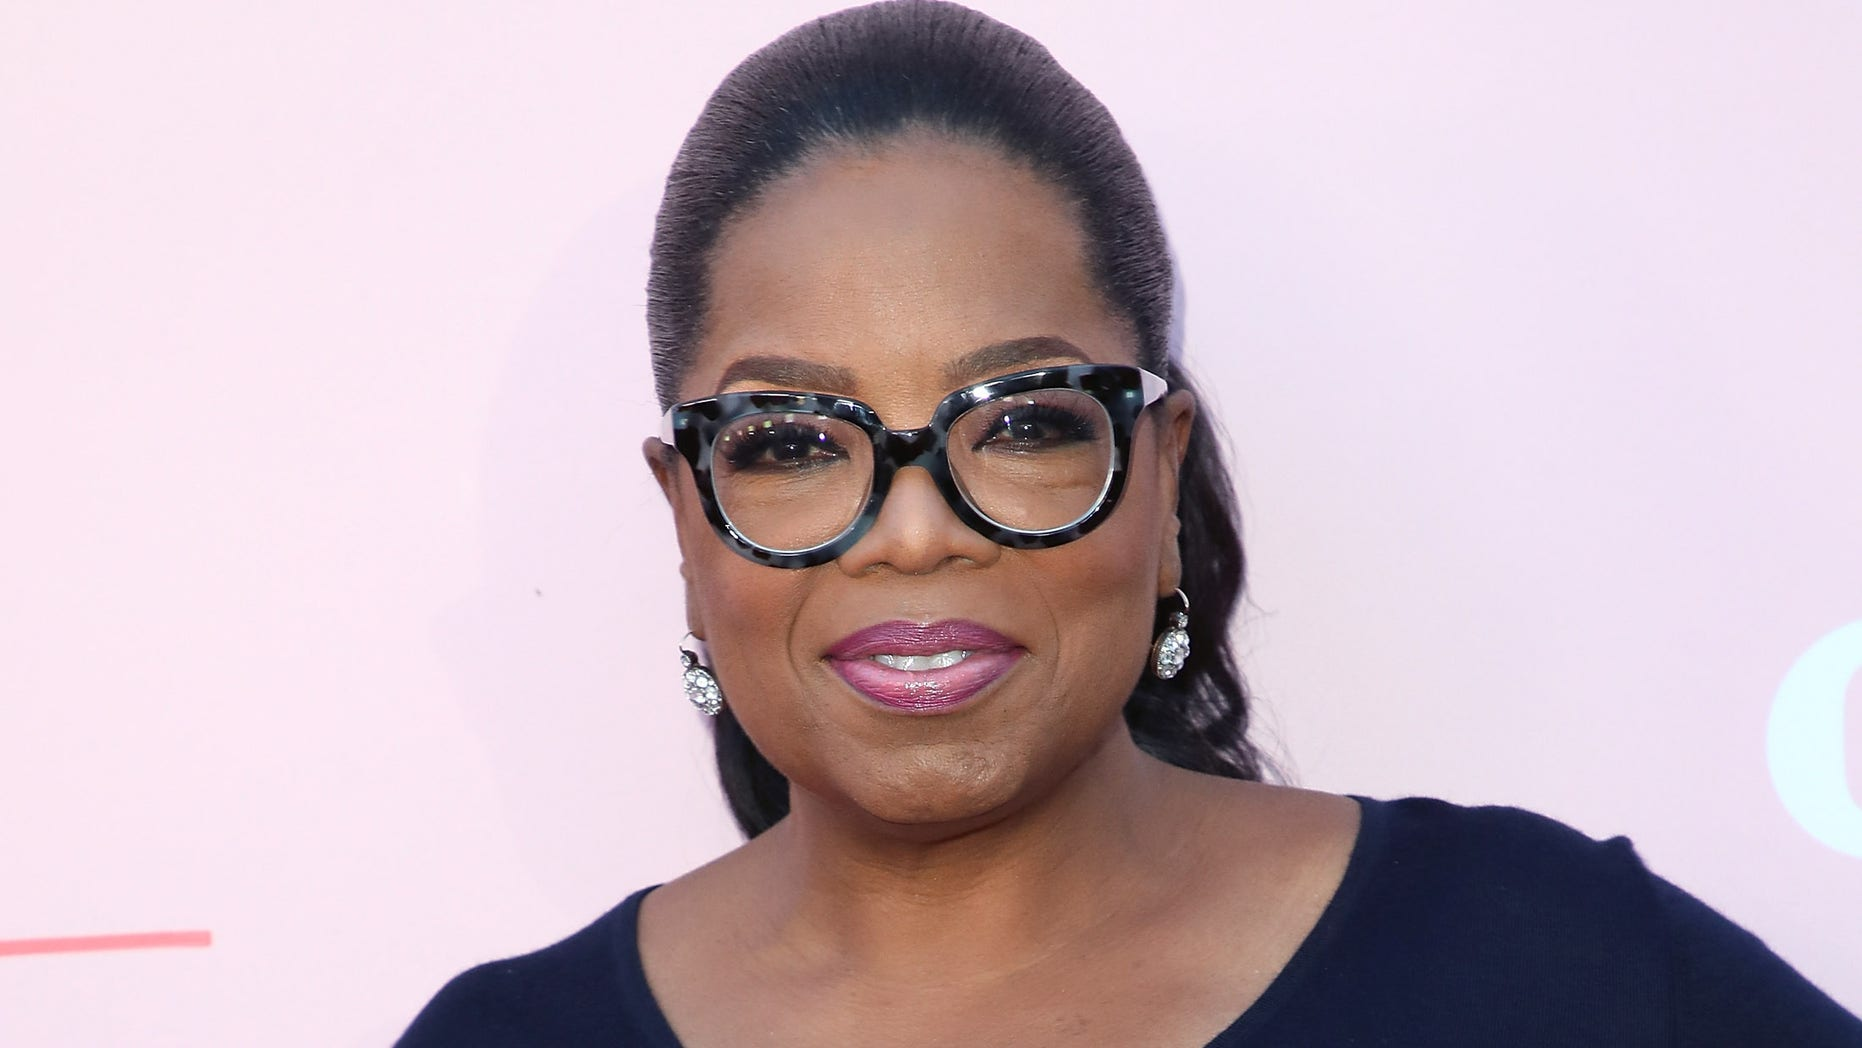 Oprah's favorite things include some pricey popcorn, as well as basically everything truffle-flavored.